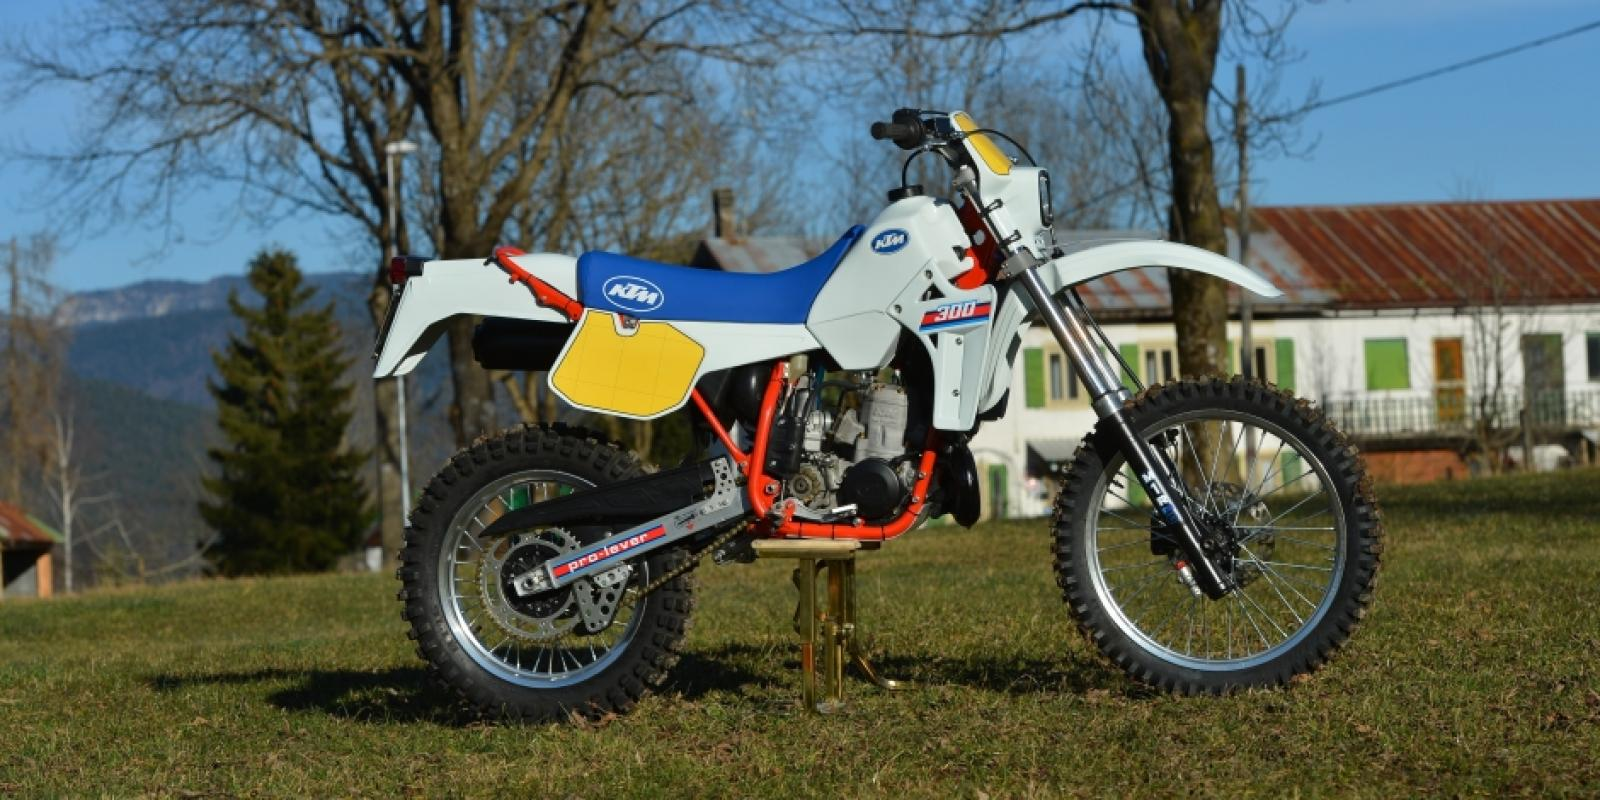 Puch GS 125 HF 1986 images #121556